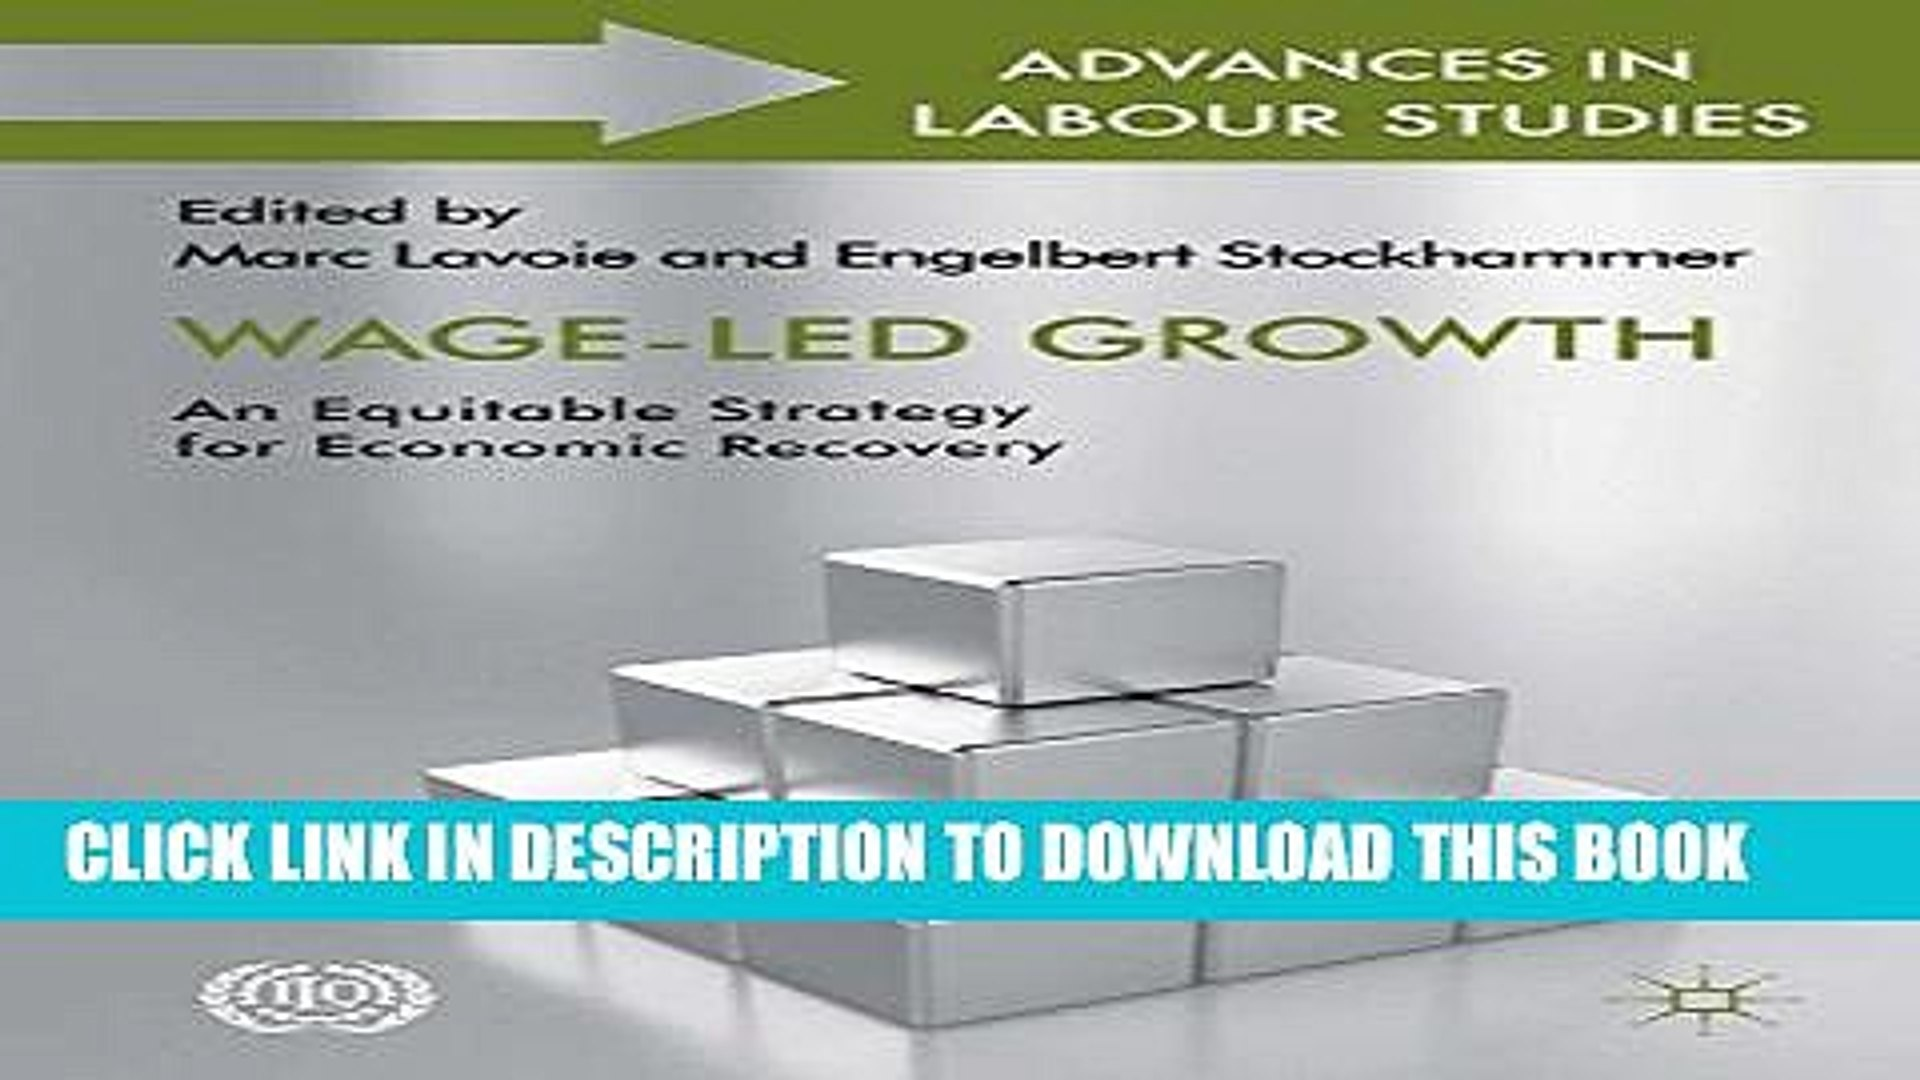 [PDF] Wage-Led Growth: An Equitable Strategy for Economic Recovery Popular Online